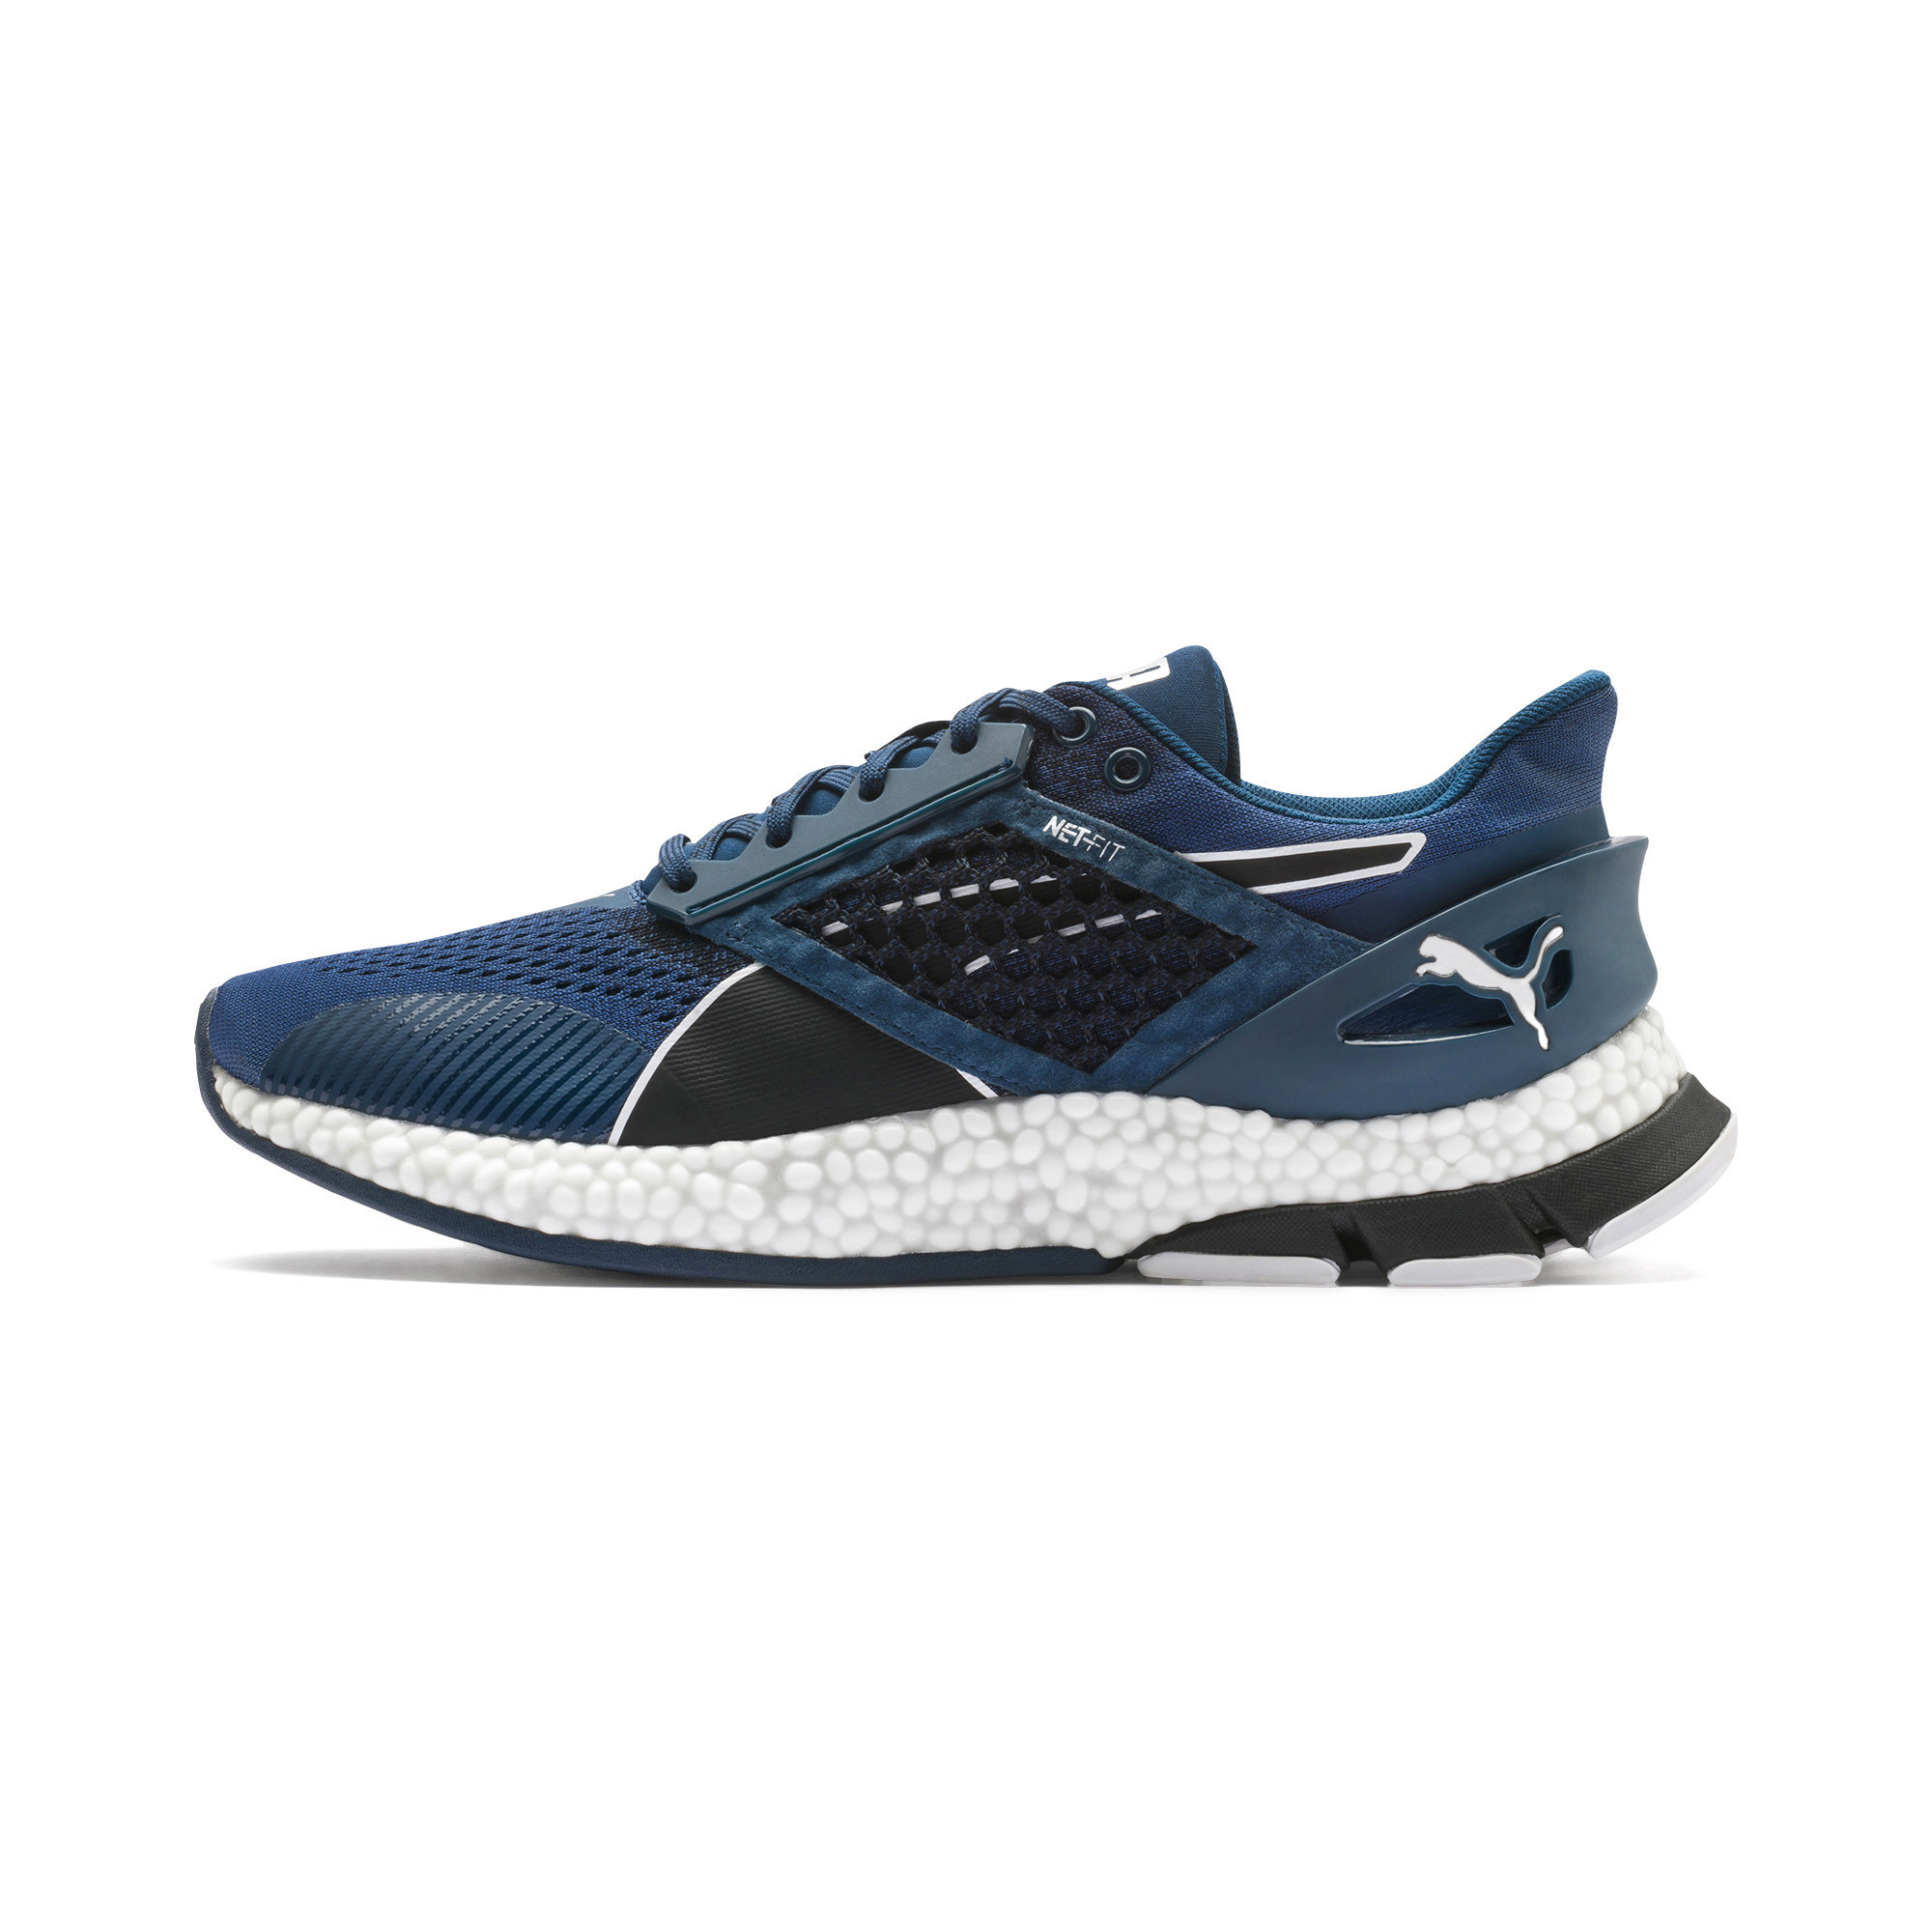 PUMA-Men-039-s-HYBRID-Astro-Running-Shoes thumbnail 7